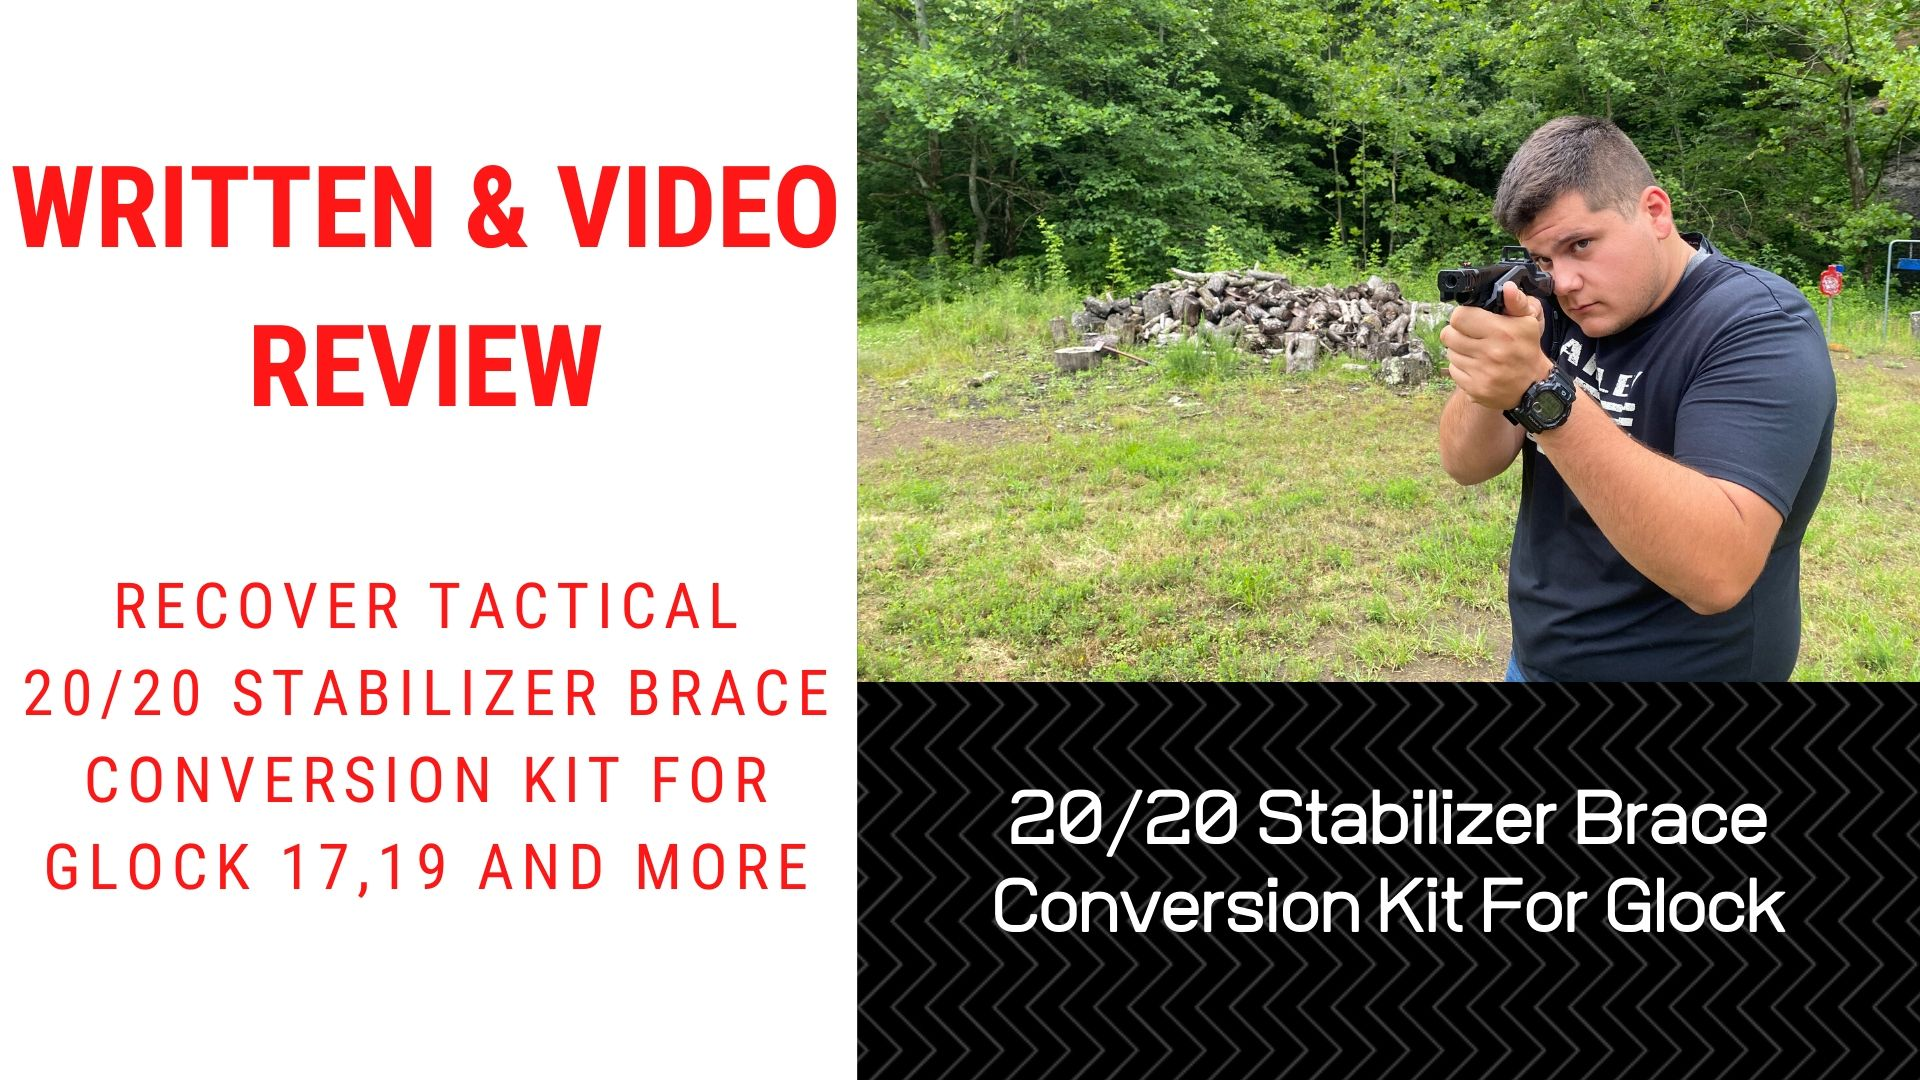 Video & Written Review Recover Tactical 2020 Stabilizer Brace Conversion Kit For Glock 17,19 And More